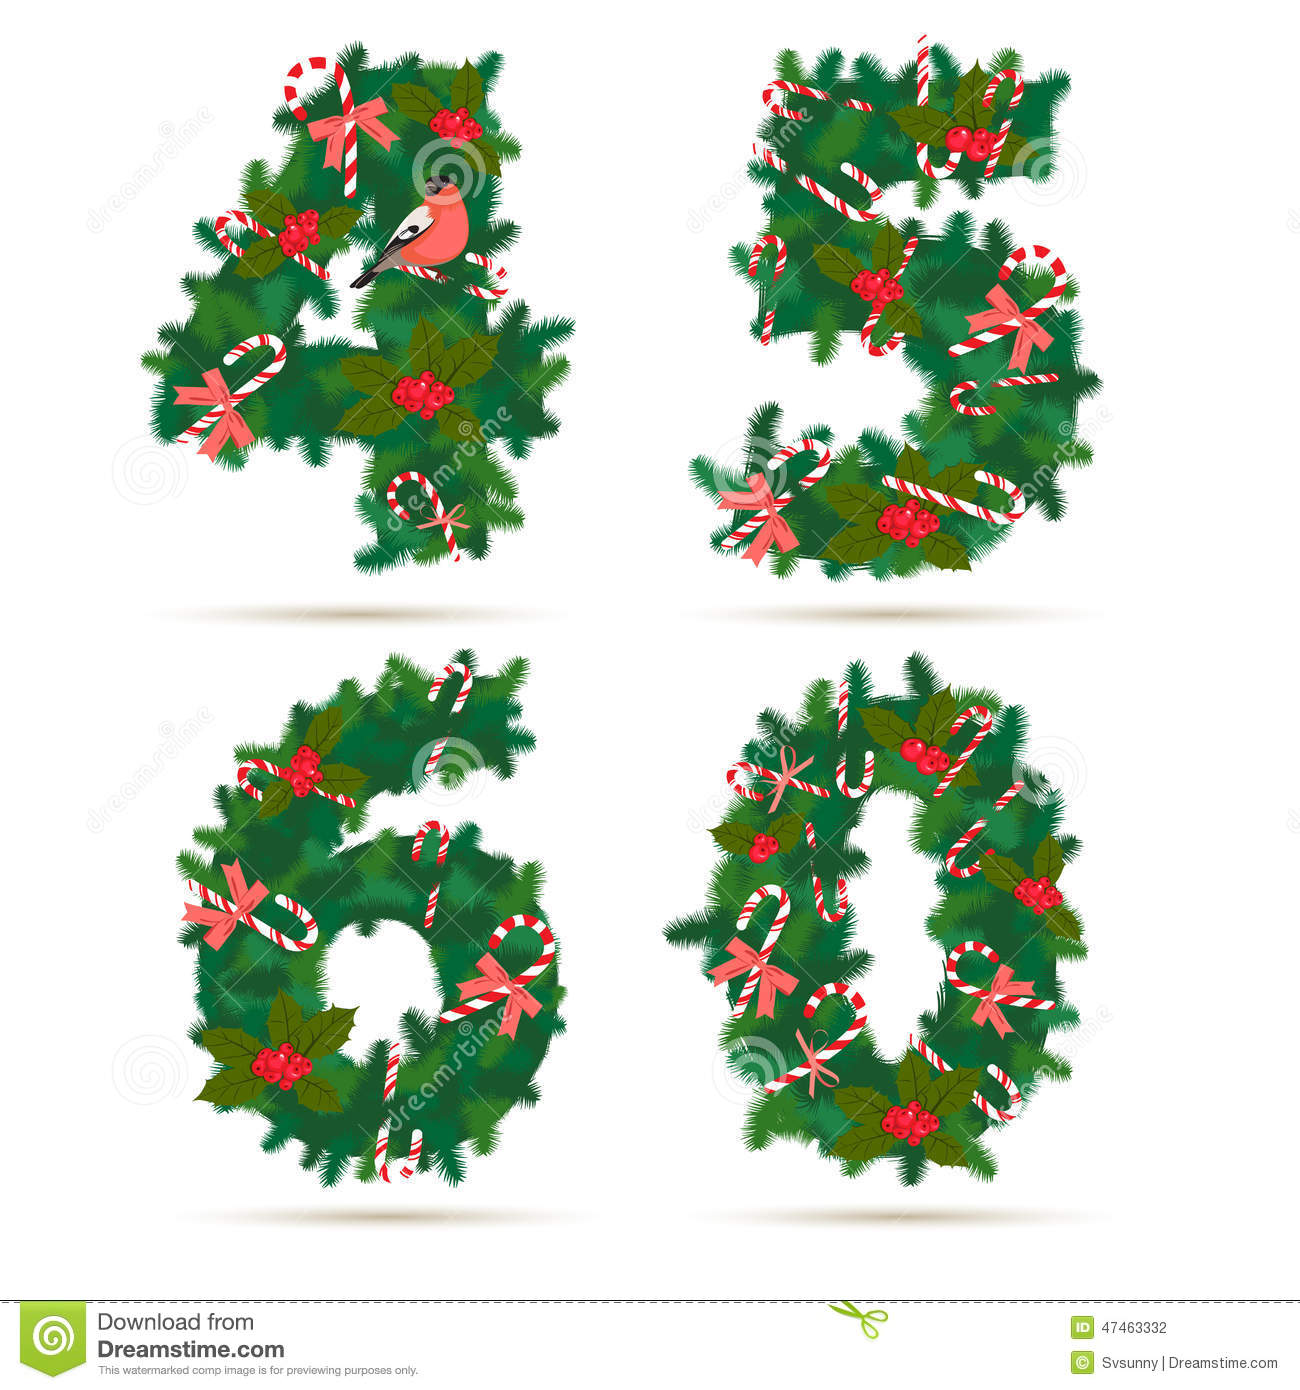 Clipart number 6 christmas clipart free library Christmas Festive Wreath Numbers: 4, 5, 6, 0. Stock Illustration ... clipart free library